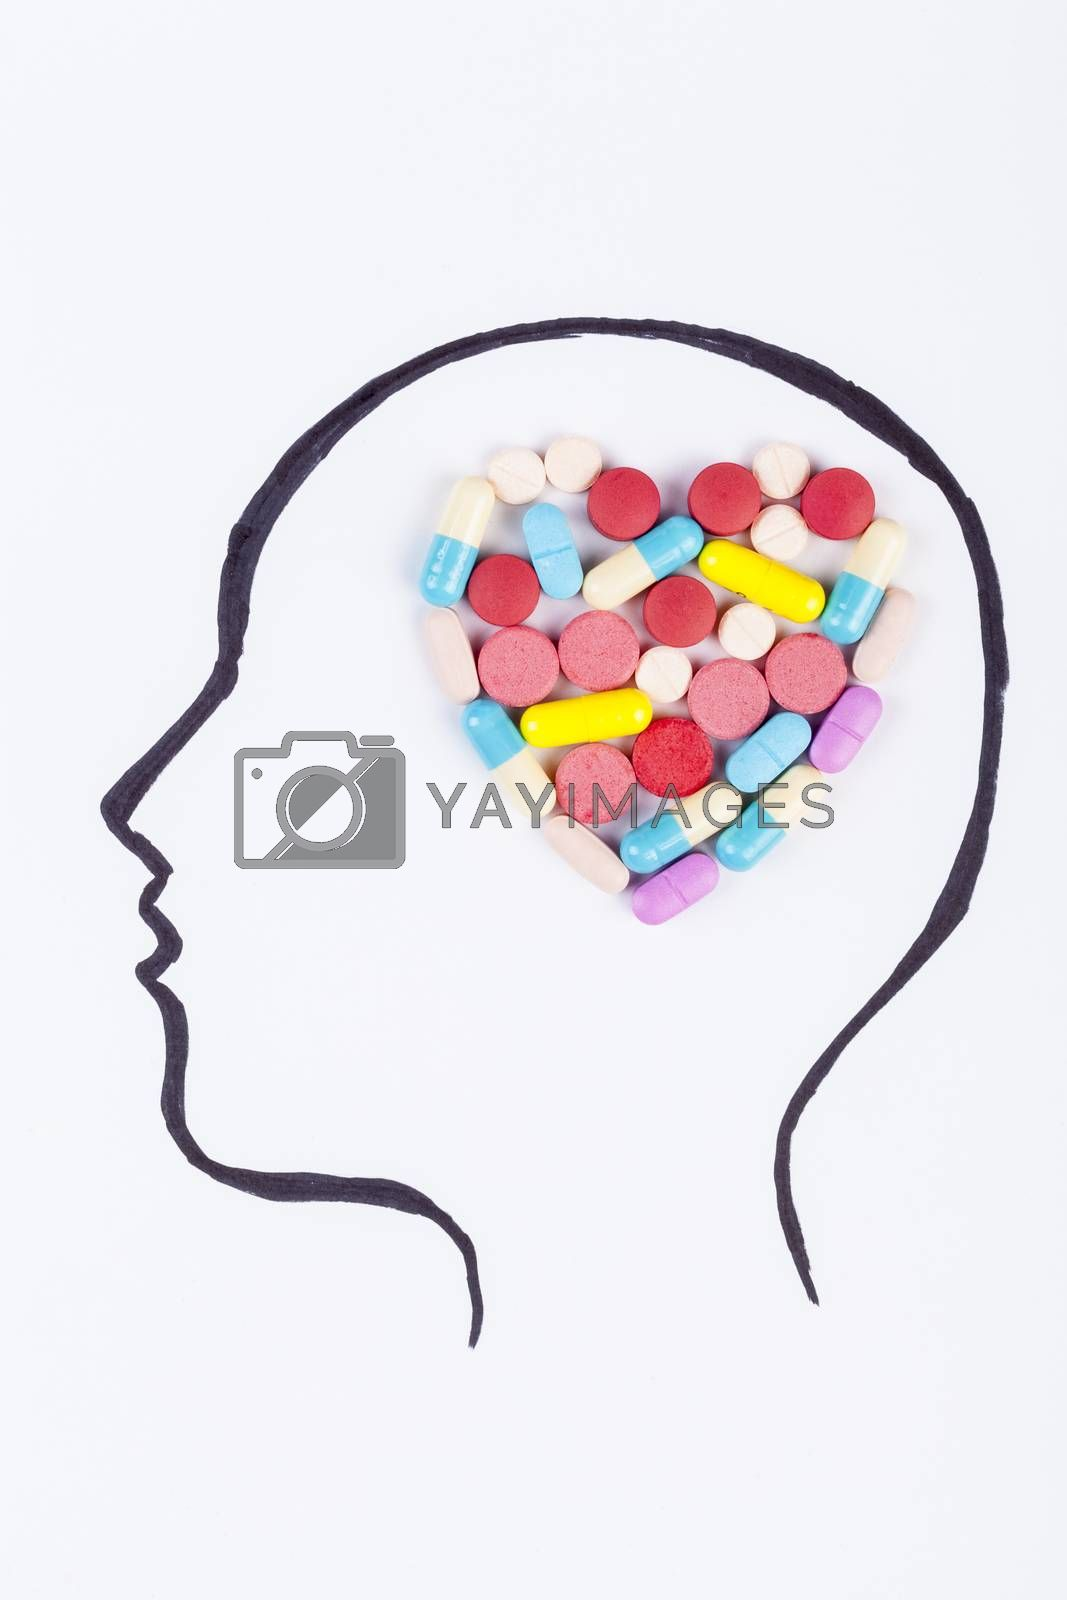 Human head hand drawing with heart shape colored pills in the brain